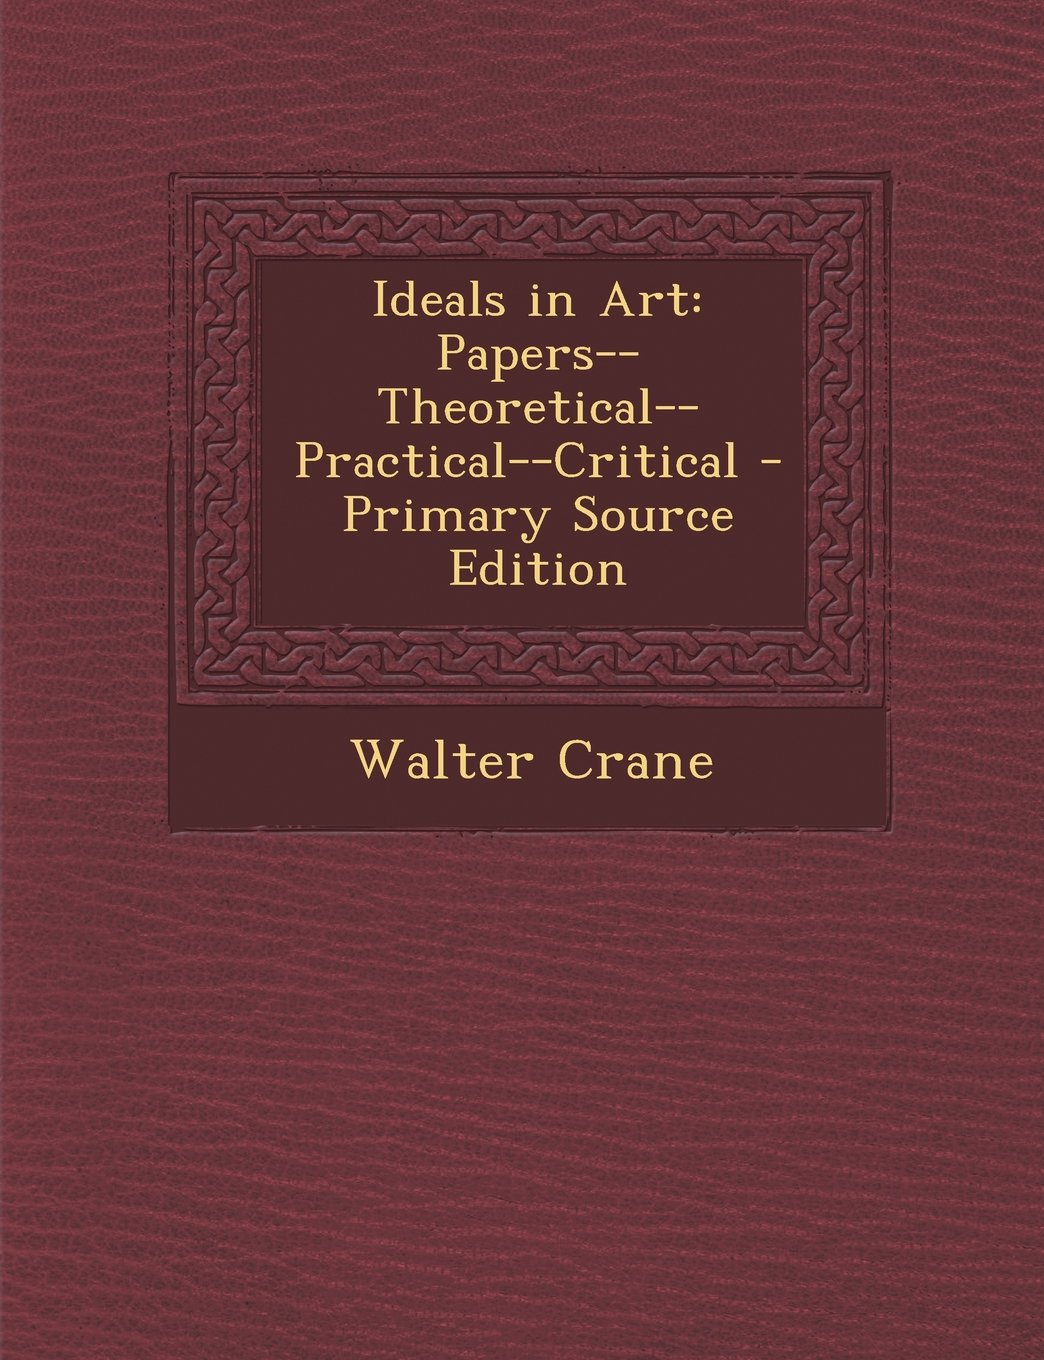 Download Ideals in Art: Papers--Theoretical--Practical--Critical - Primary Source Edition pdf epub